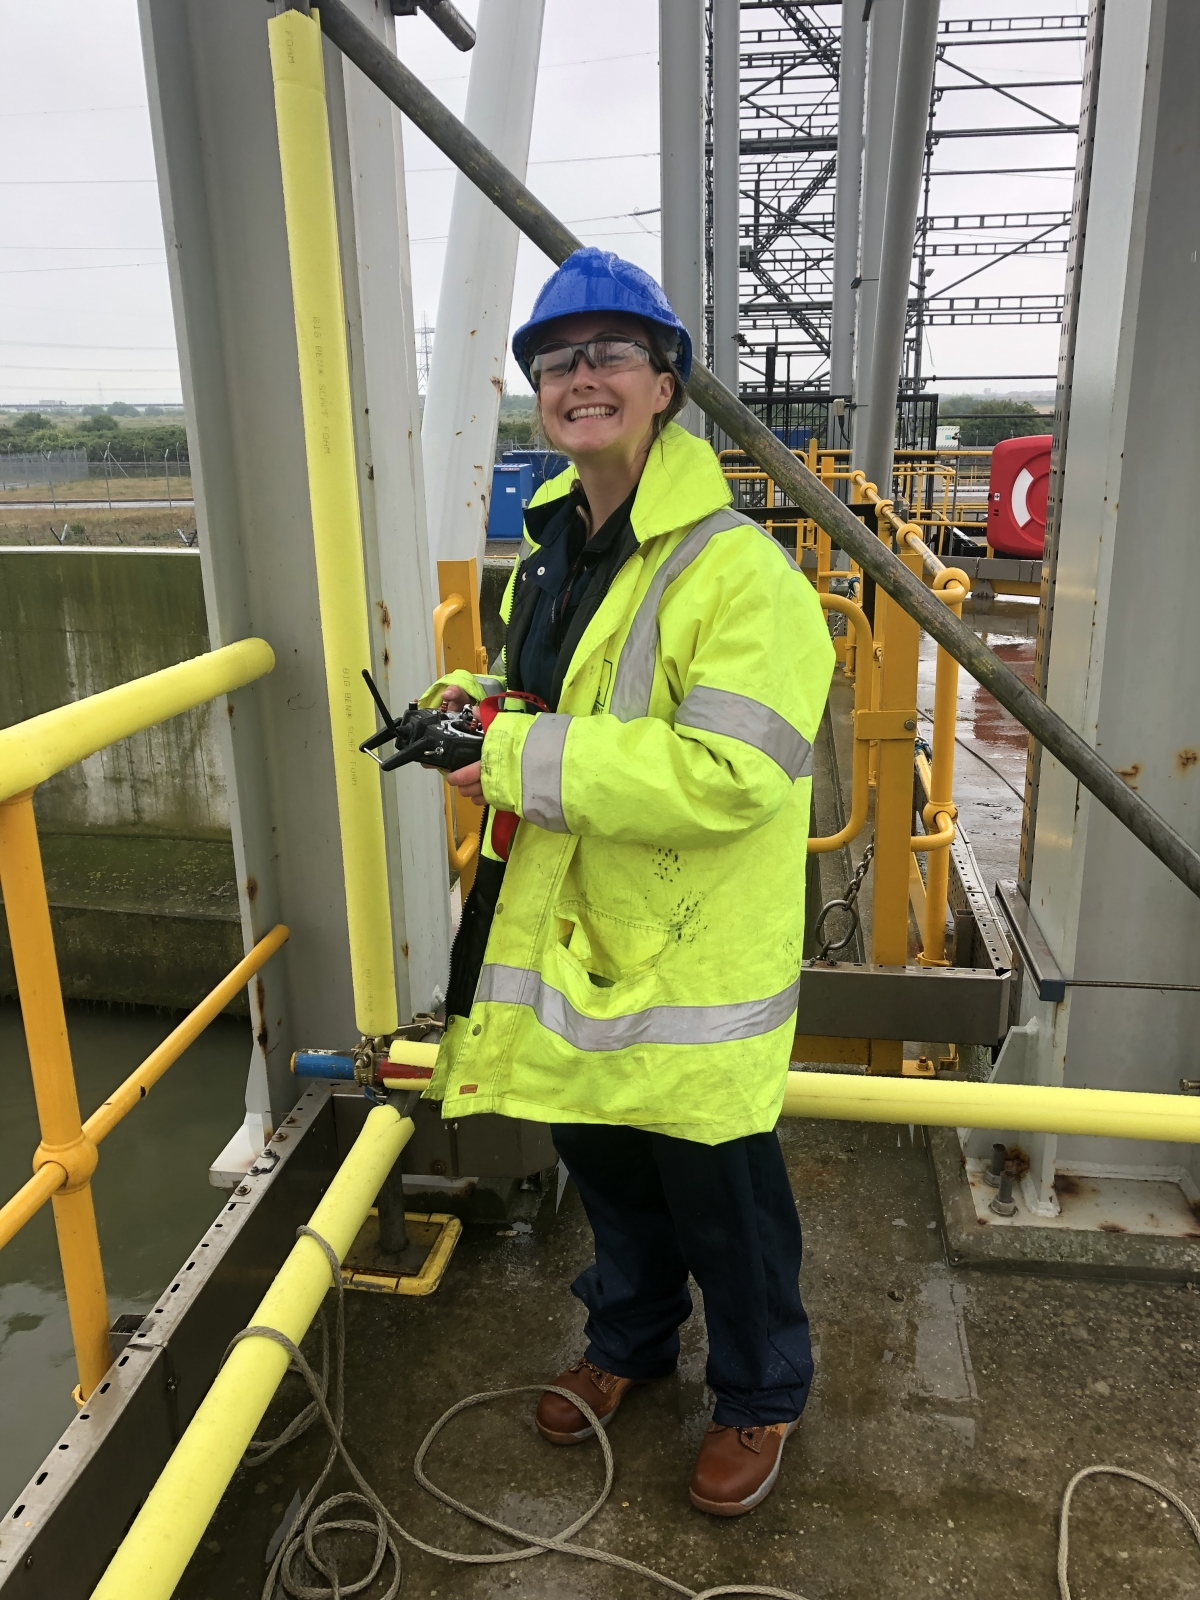 Nicola Woodley - Hydrographic Surveyor